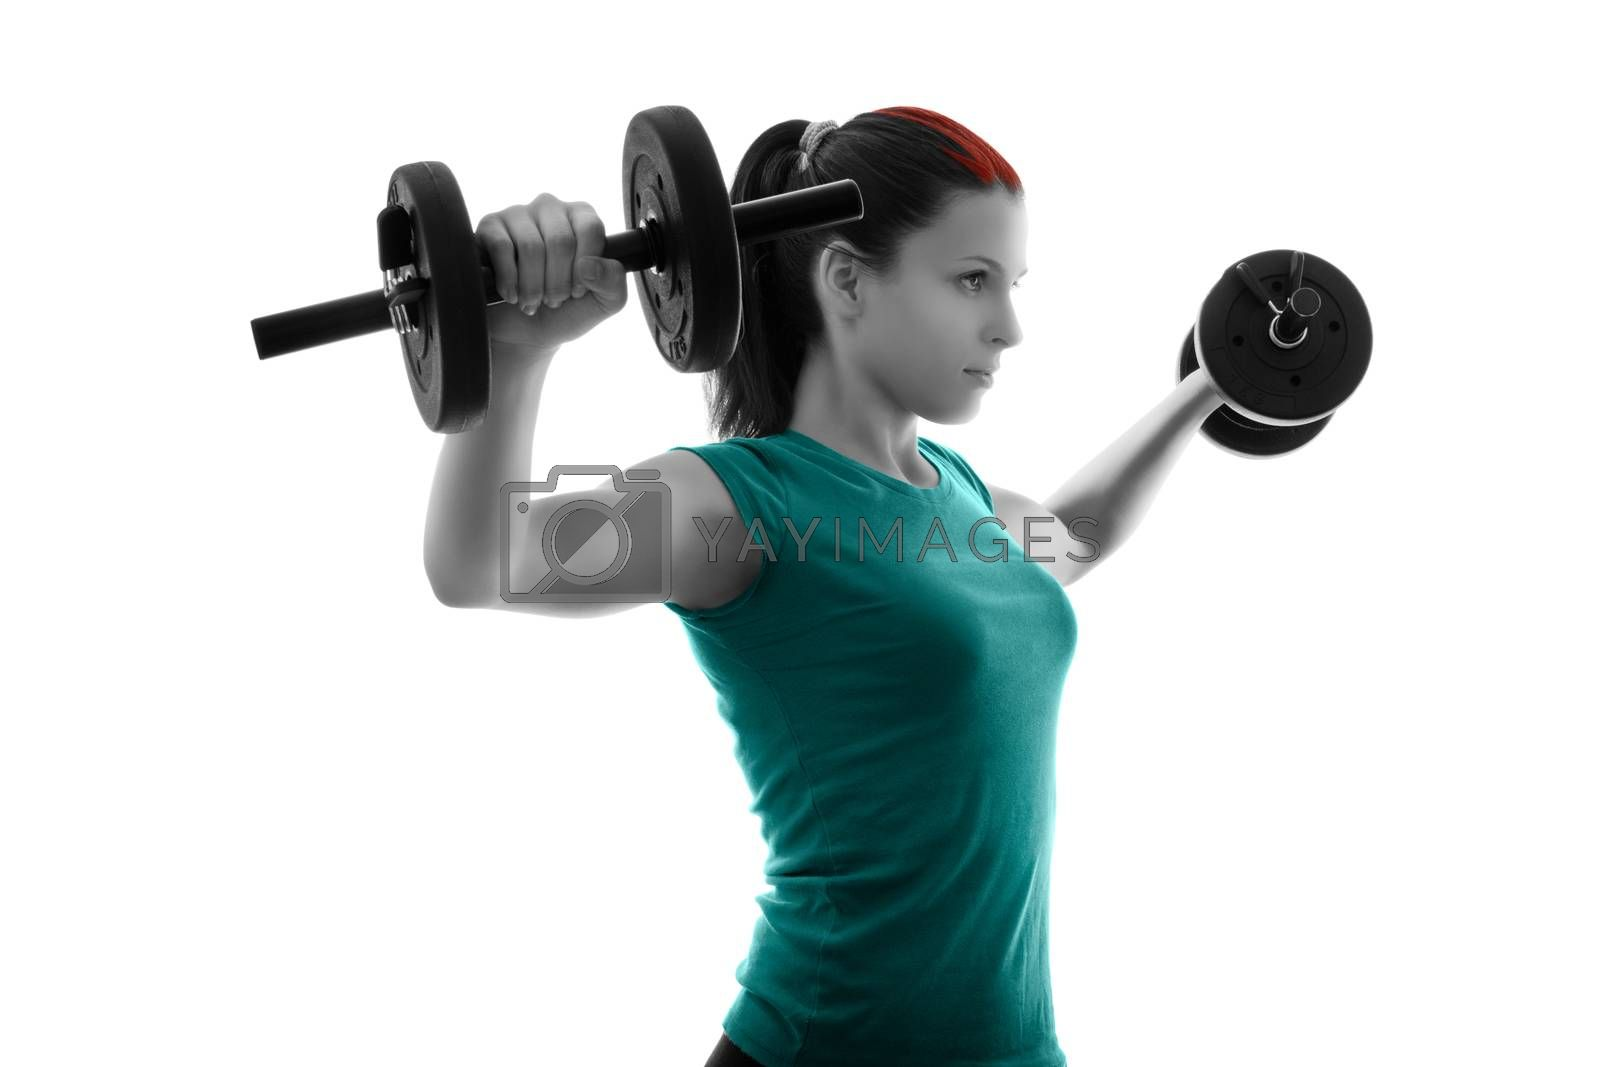 Fit attractive young woman working out with a set of dumbbells, backlit silhouette studio shot isolated on white background. Fitness and healthy lifestyle concept.